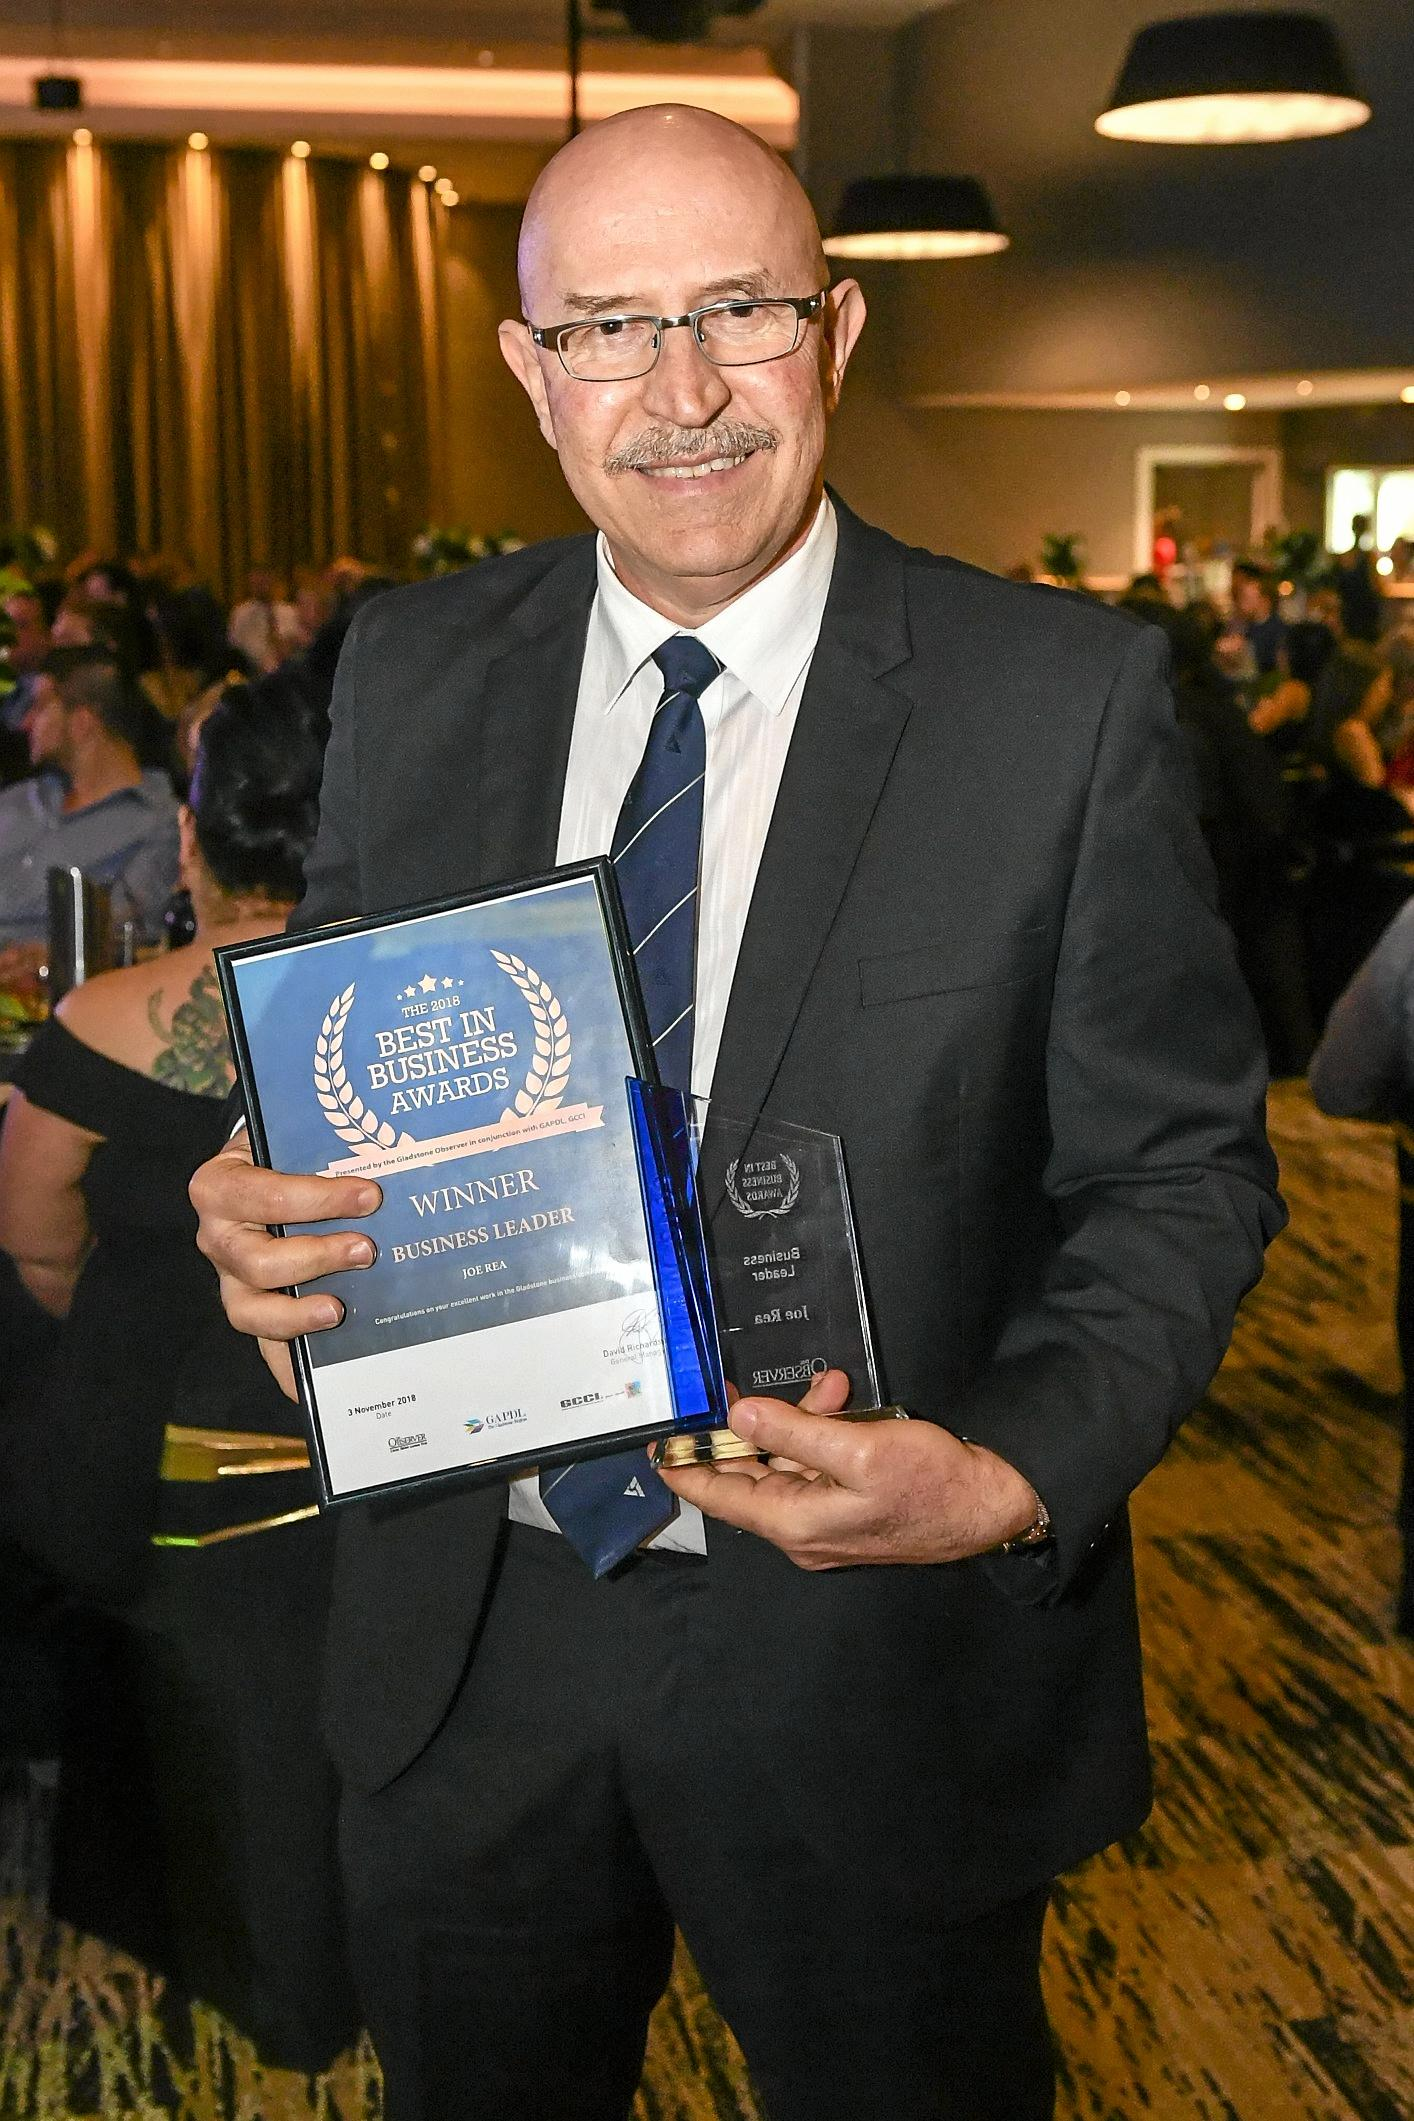 LEADING THE WAY: Boyne Smelters Limited general manager Joe Rea won the Business Leader Award, with BSL taking out the Innovation Award.